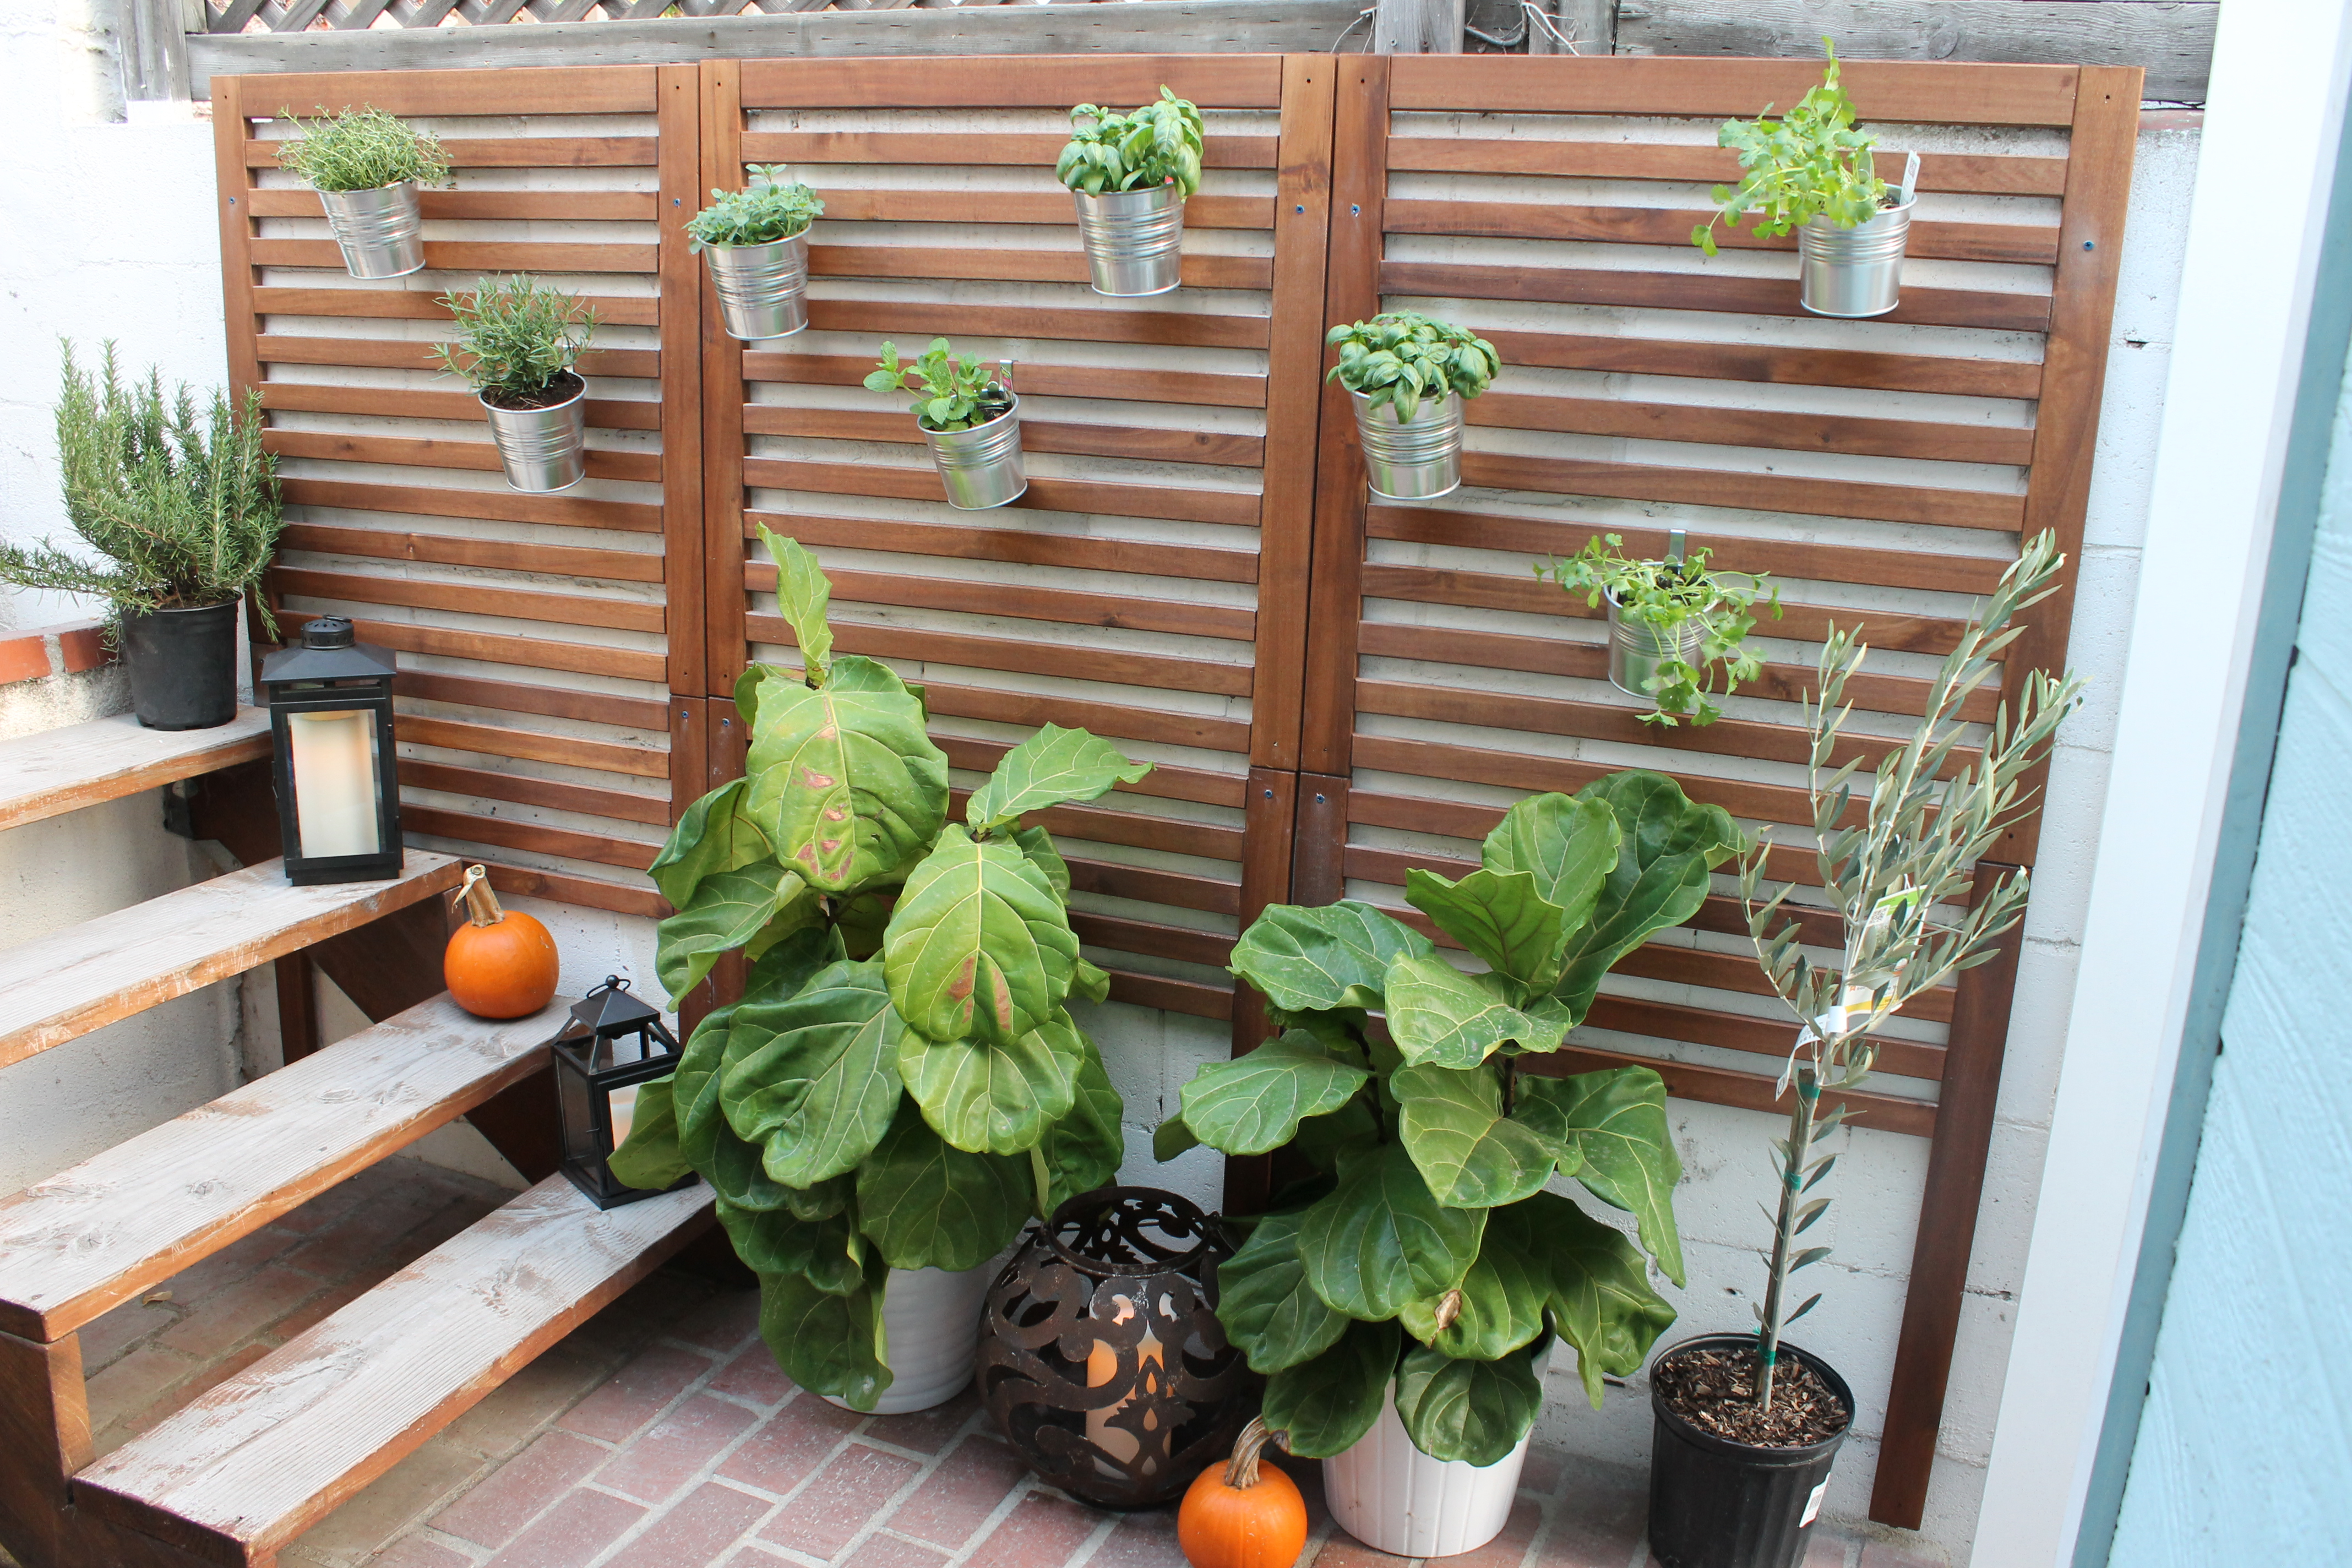 Weekend project patio garden for Outdoor wall planter ideas